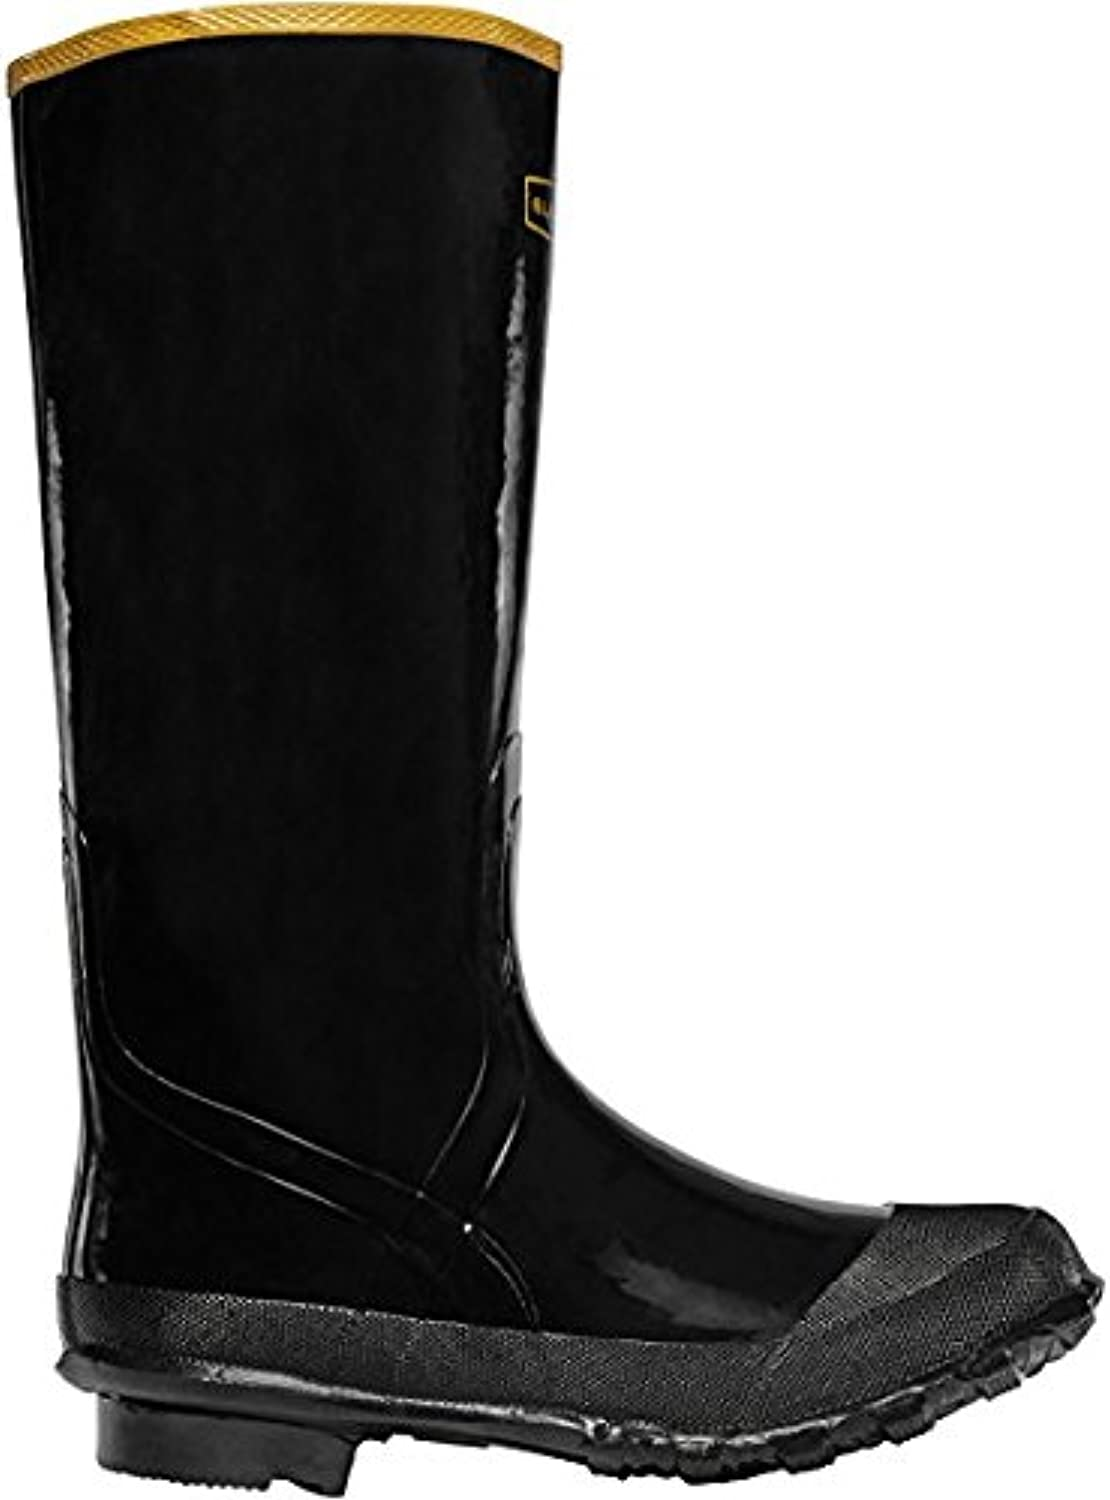 LACROSSE Economy Knee Boot 16  Black (24009033)   Waterproof   Insulated Modern Comfortable Hunting Combat Boot Best for Mud, Snow